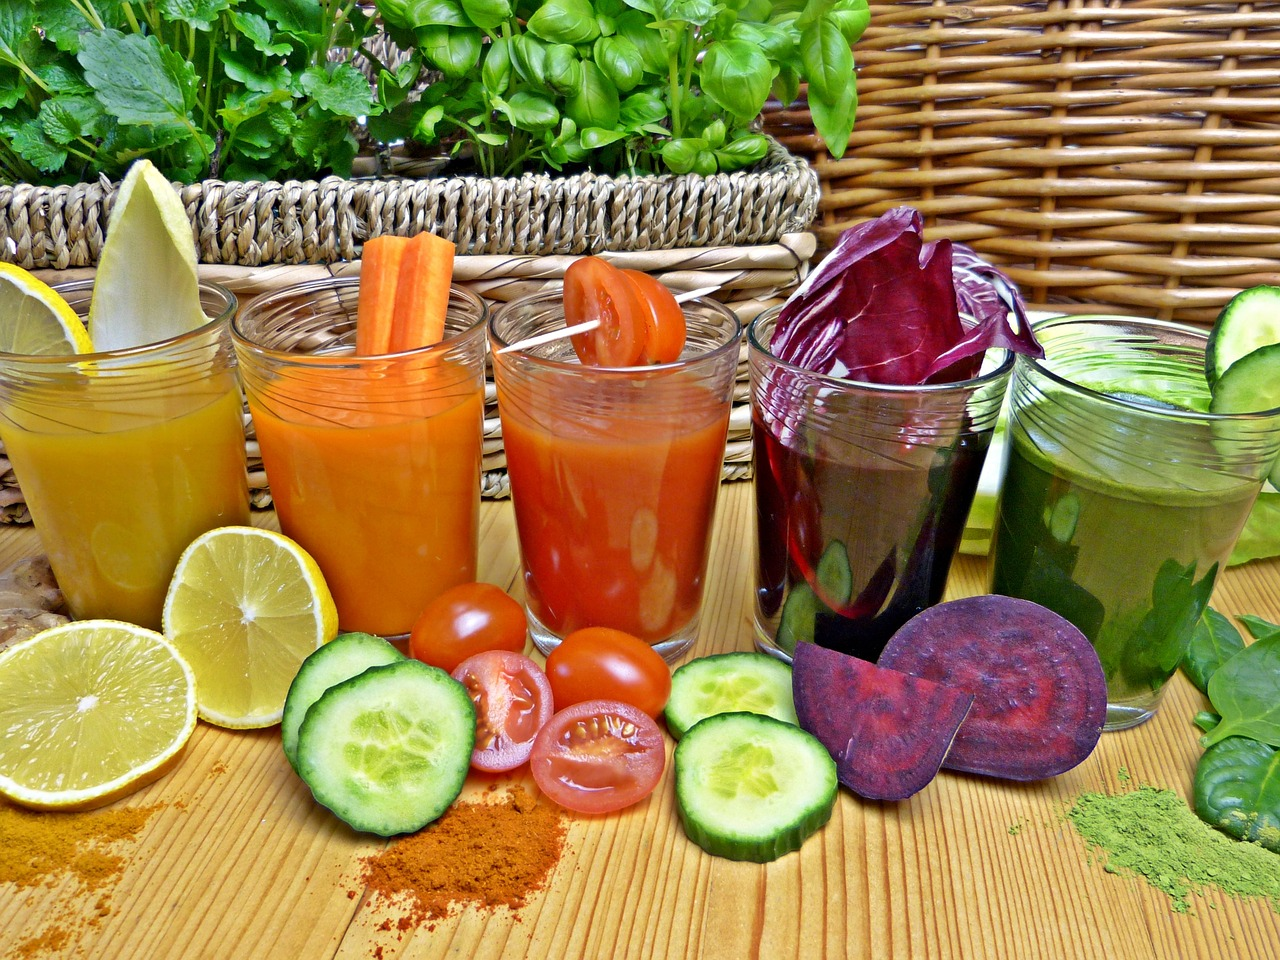 veggie juice makes healthy drinks